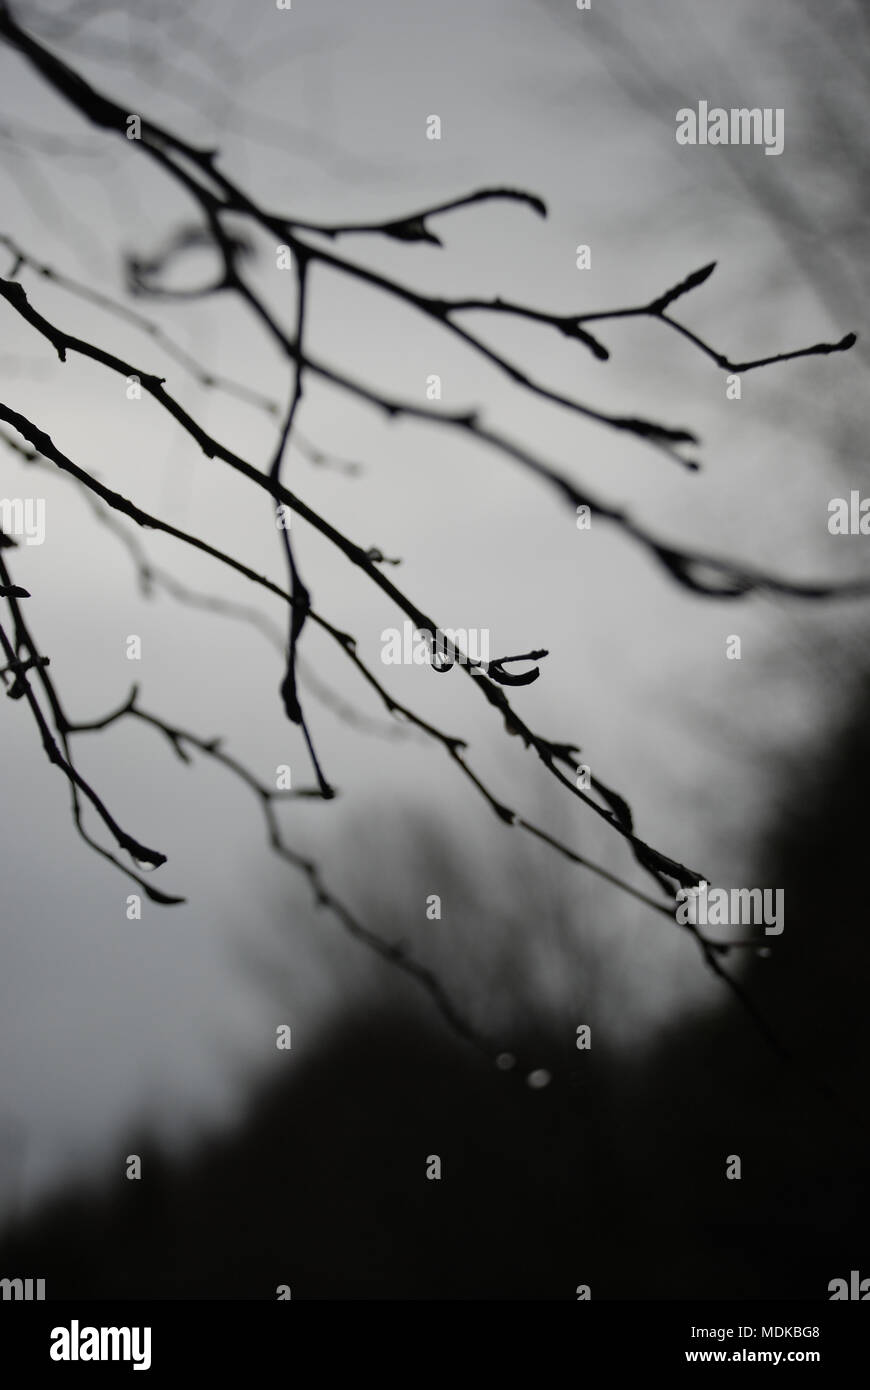 Water Drops Hang hanging from a thin tree branch silhouetted against a gray sky - Stock Image